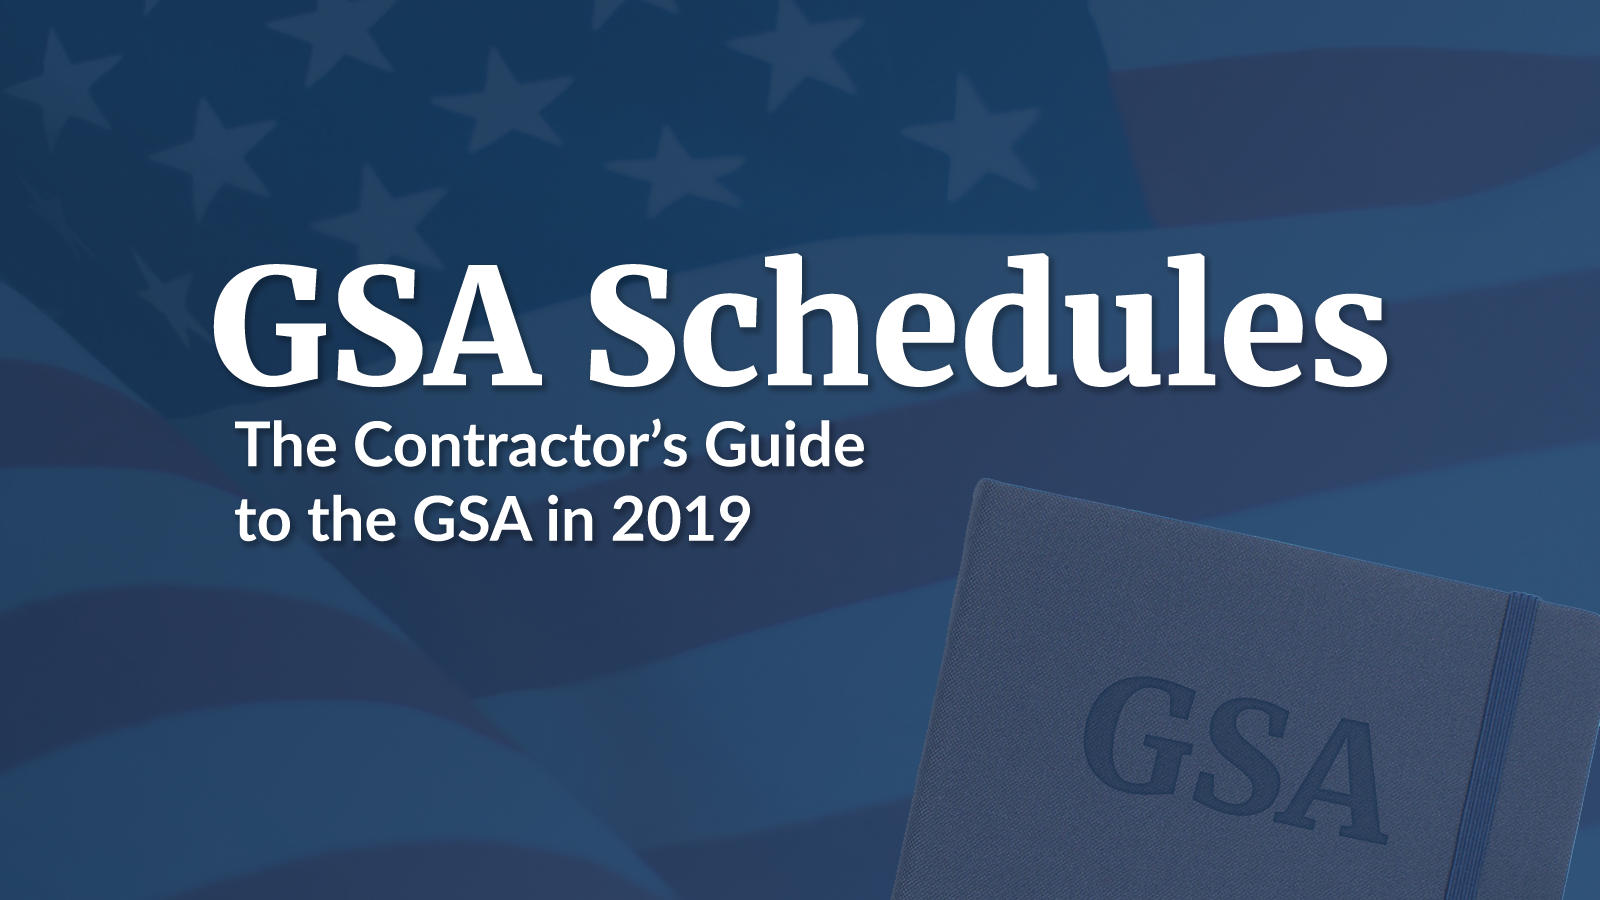 GSA Schedules - The Contractor's Guide to the GSA in 2019